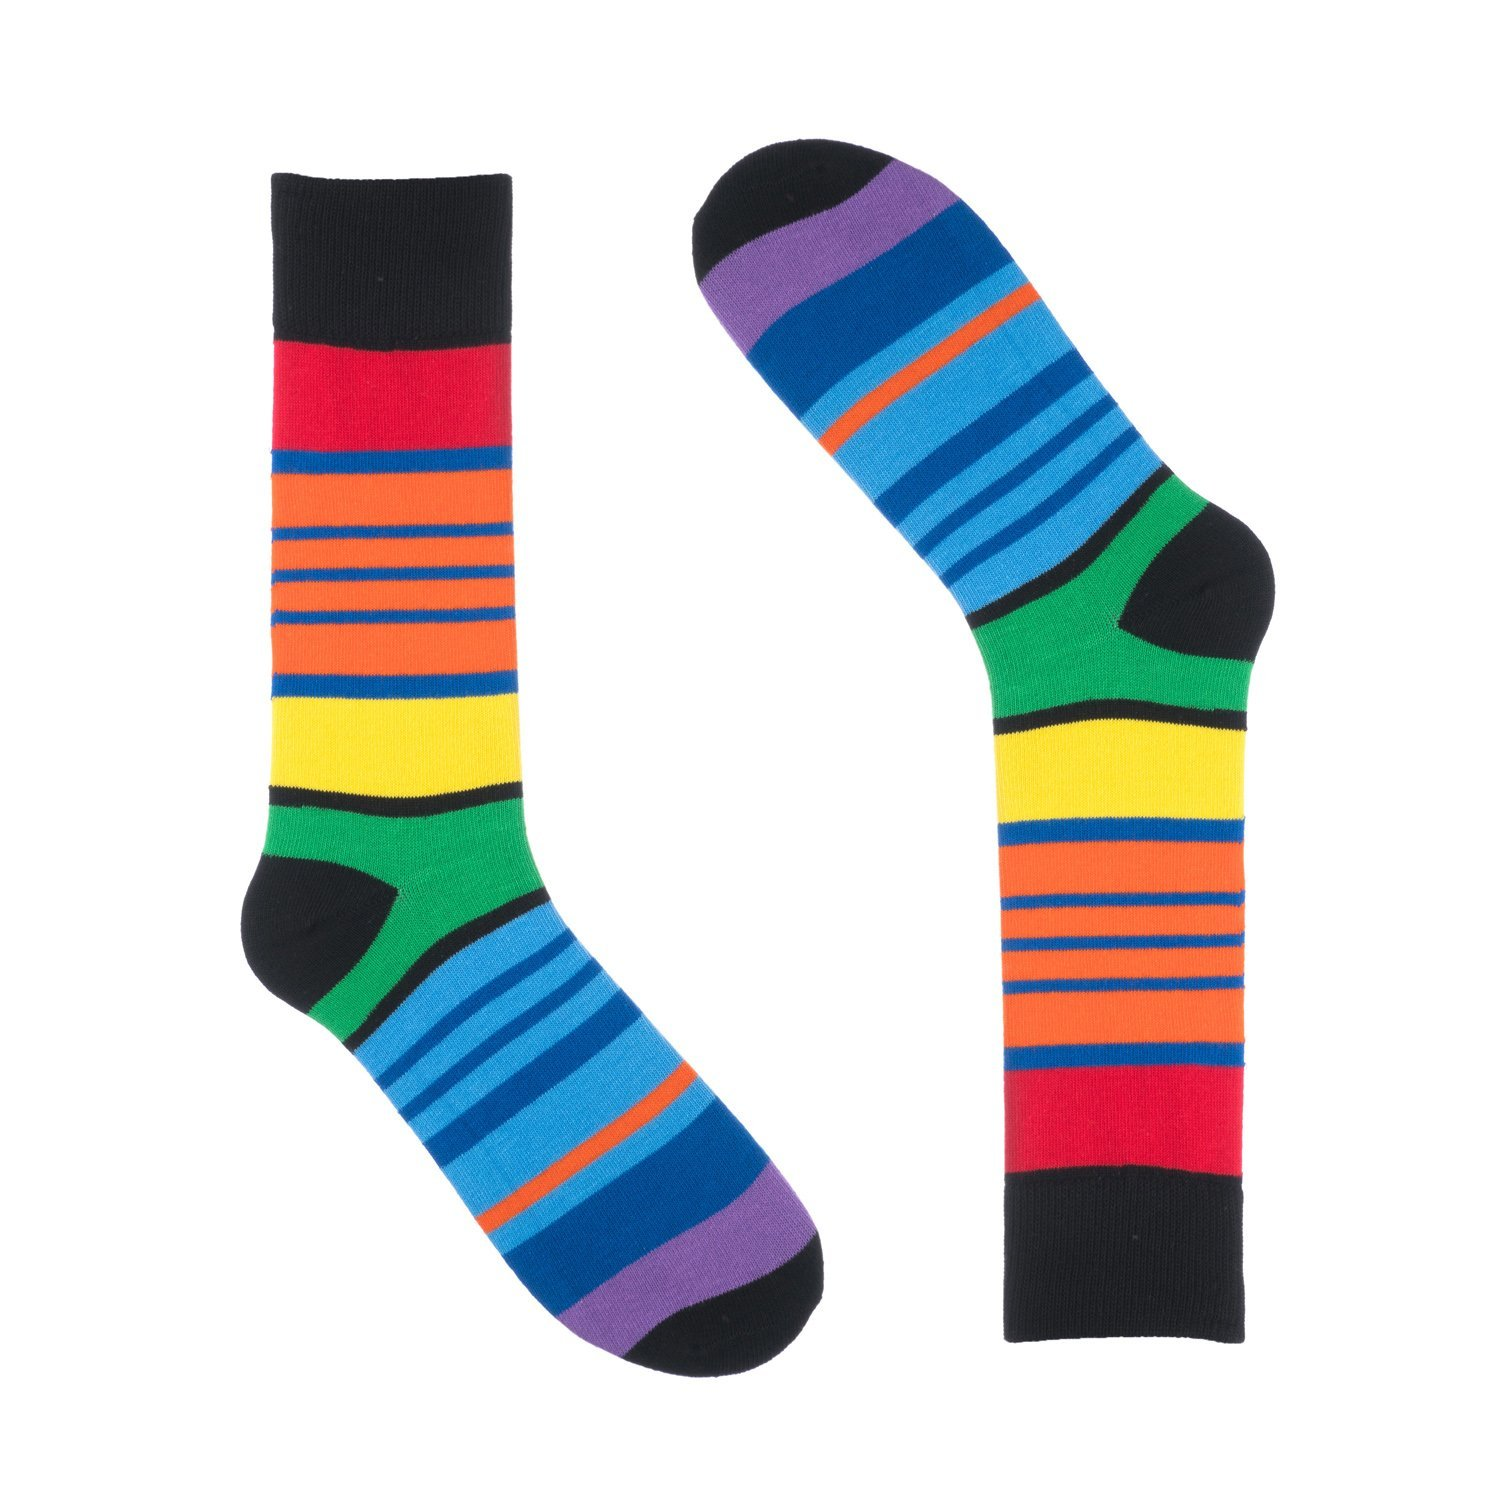 aa052f6687e3 Get Quotations · Ivory + Mason Striped Socks for Men - Dress Sock -  Colorful - Black Colorful -